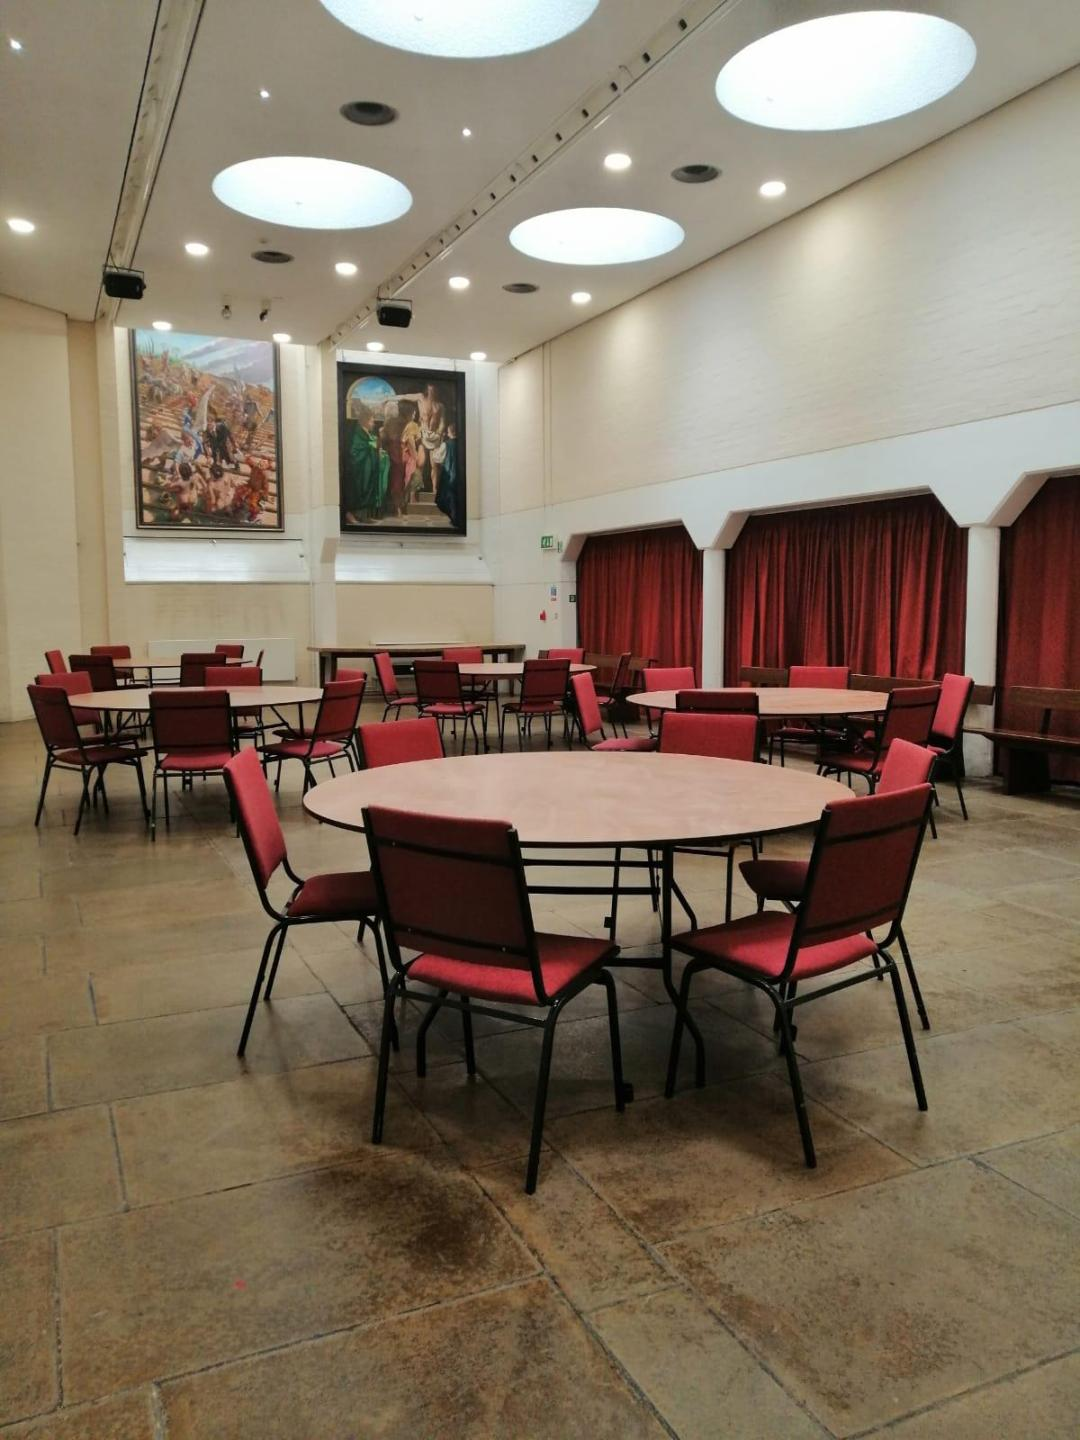 Large Round Tables set up for an event